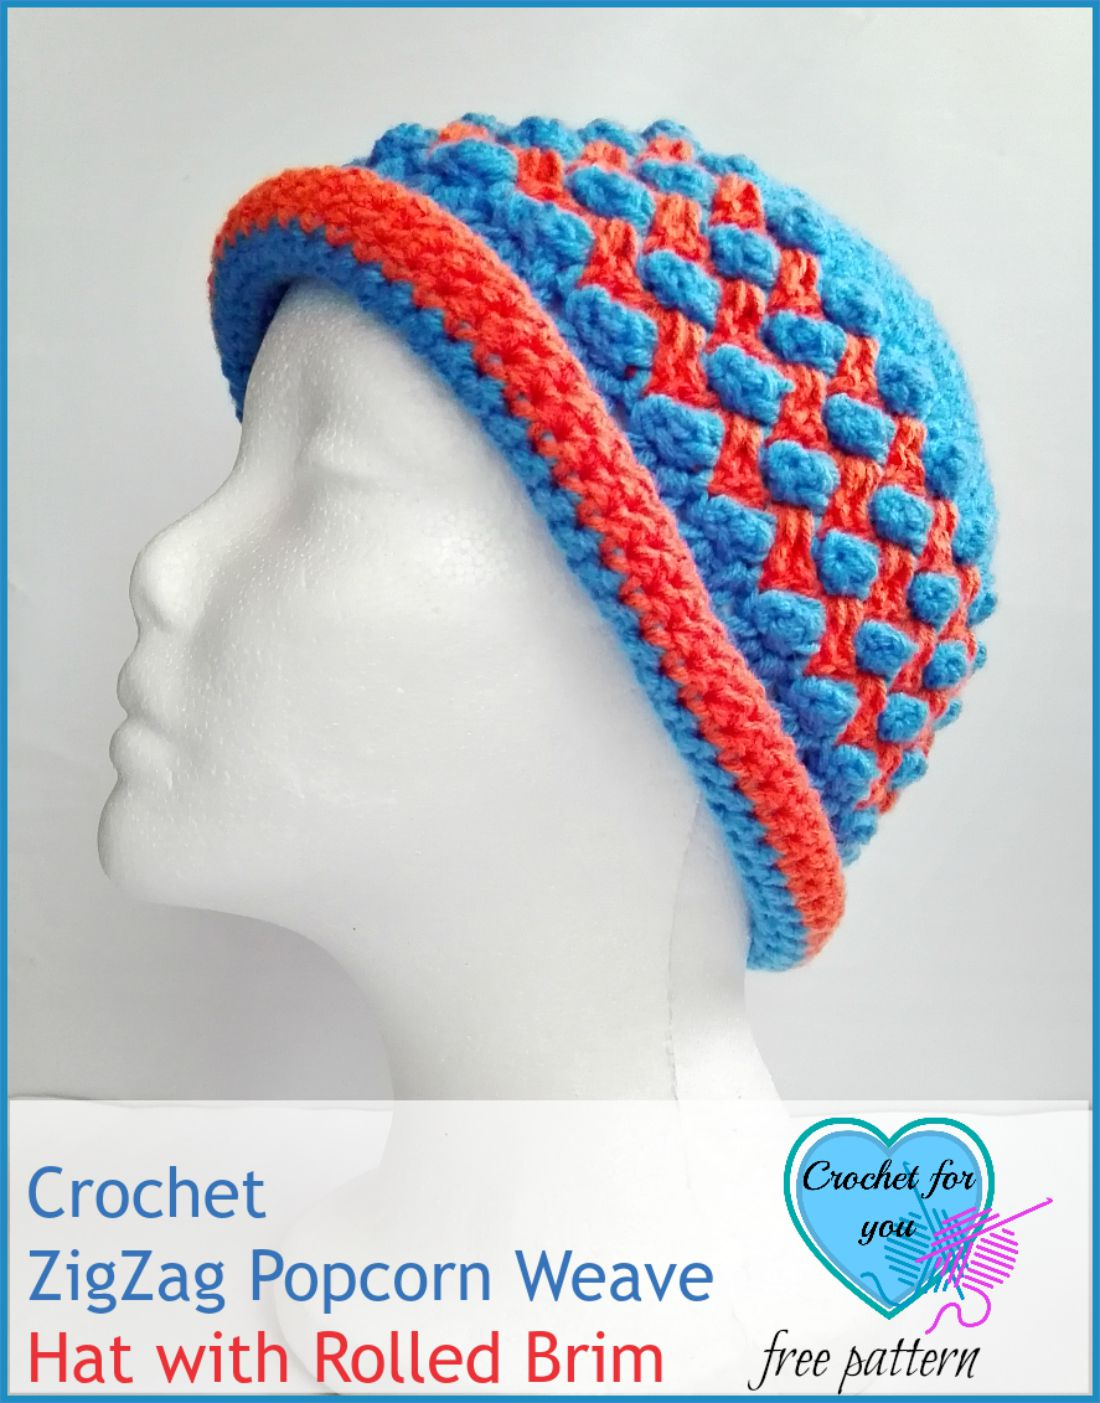 Crochet ZigZag Popcorn Weave Hat with Rolled Brim - free pattern